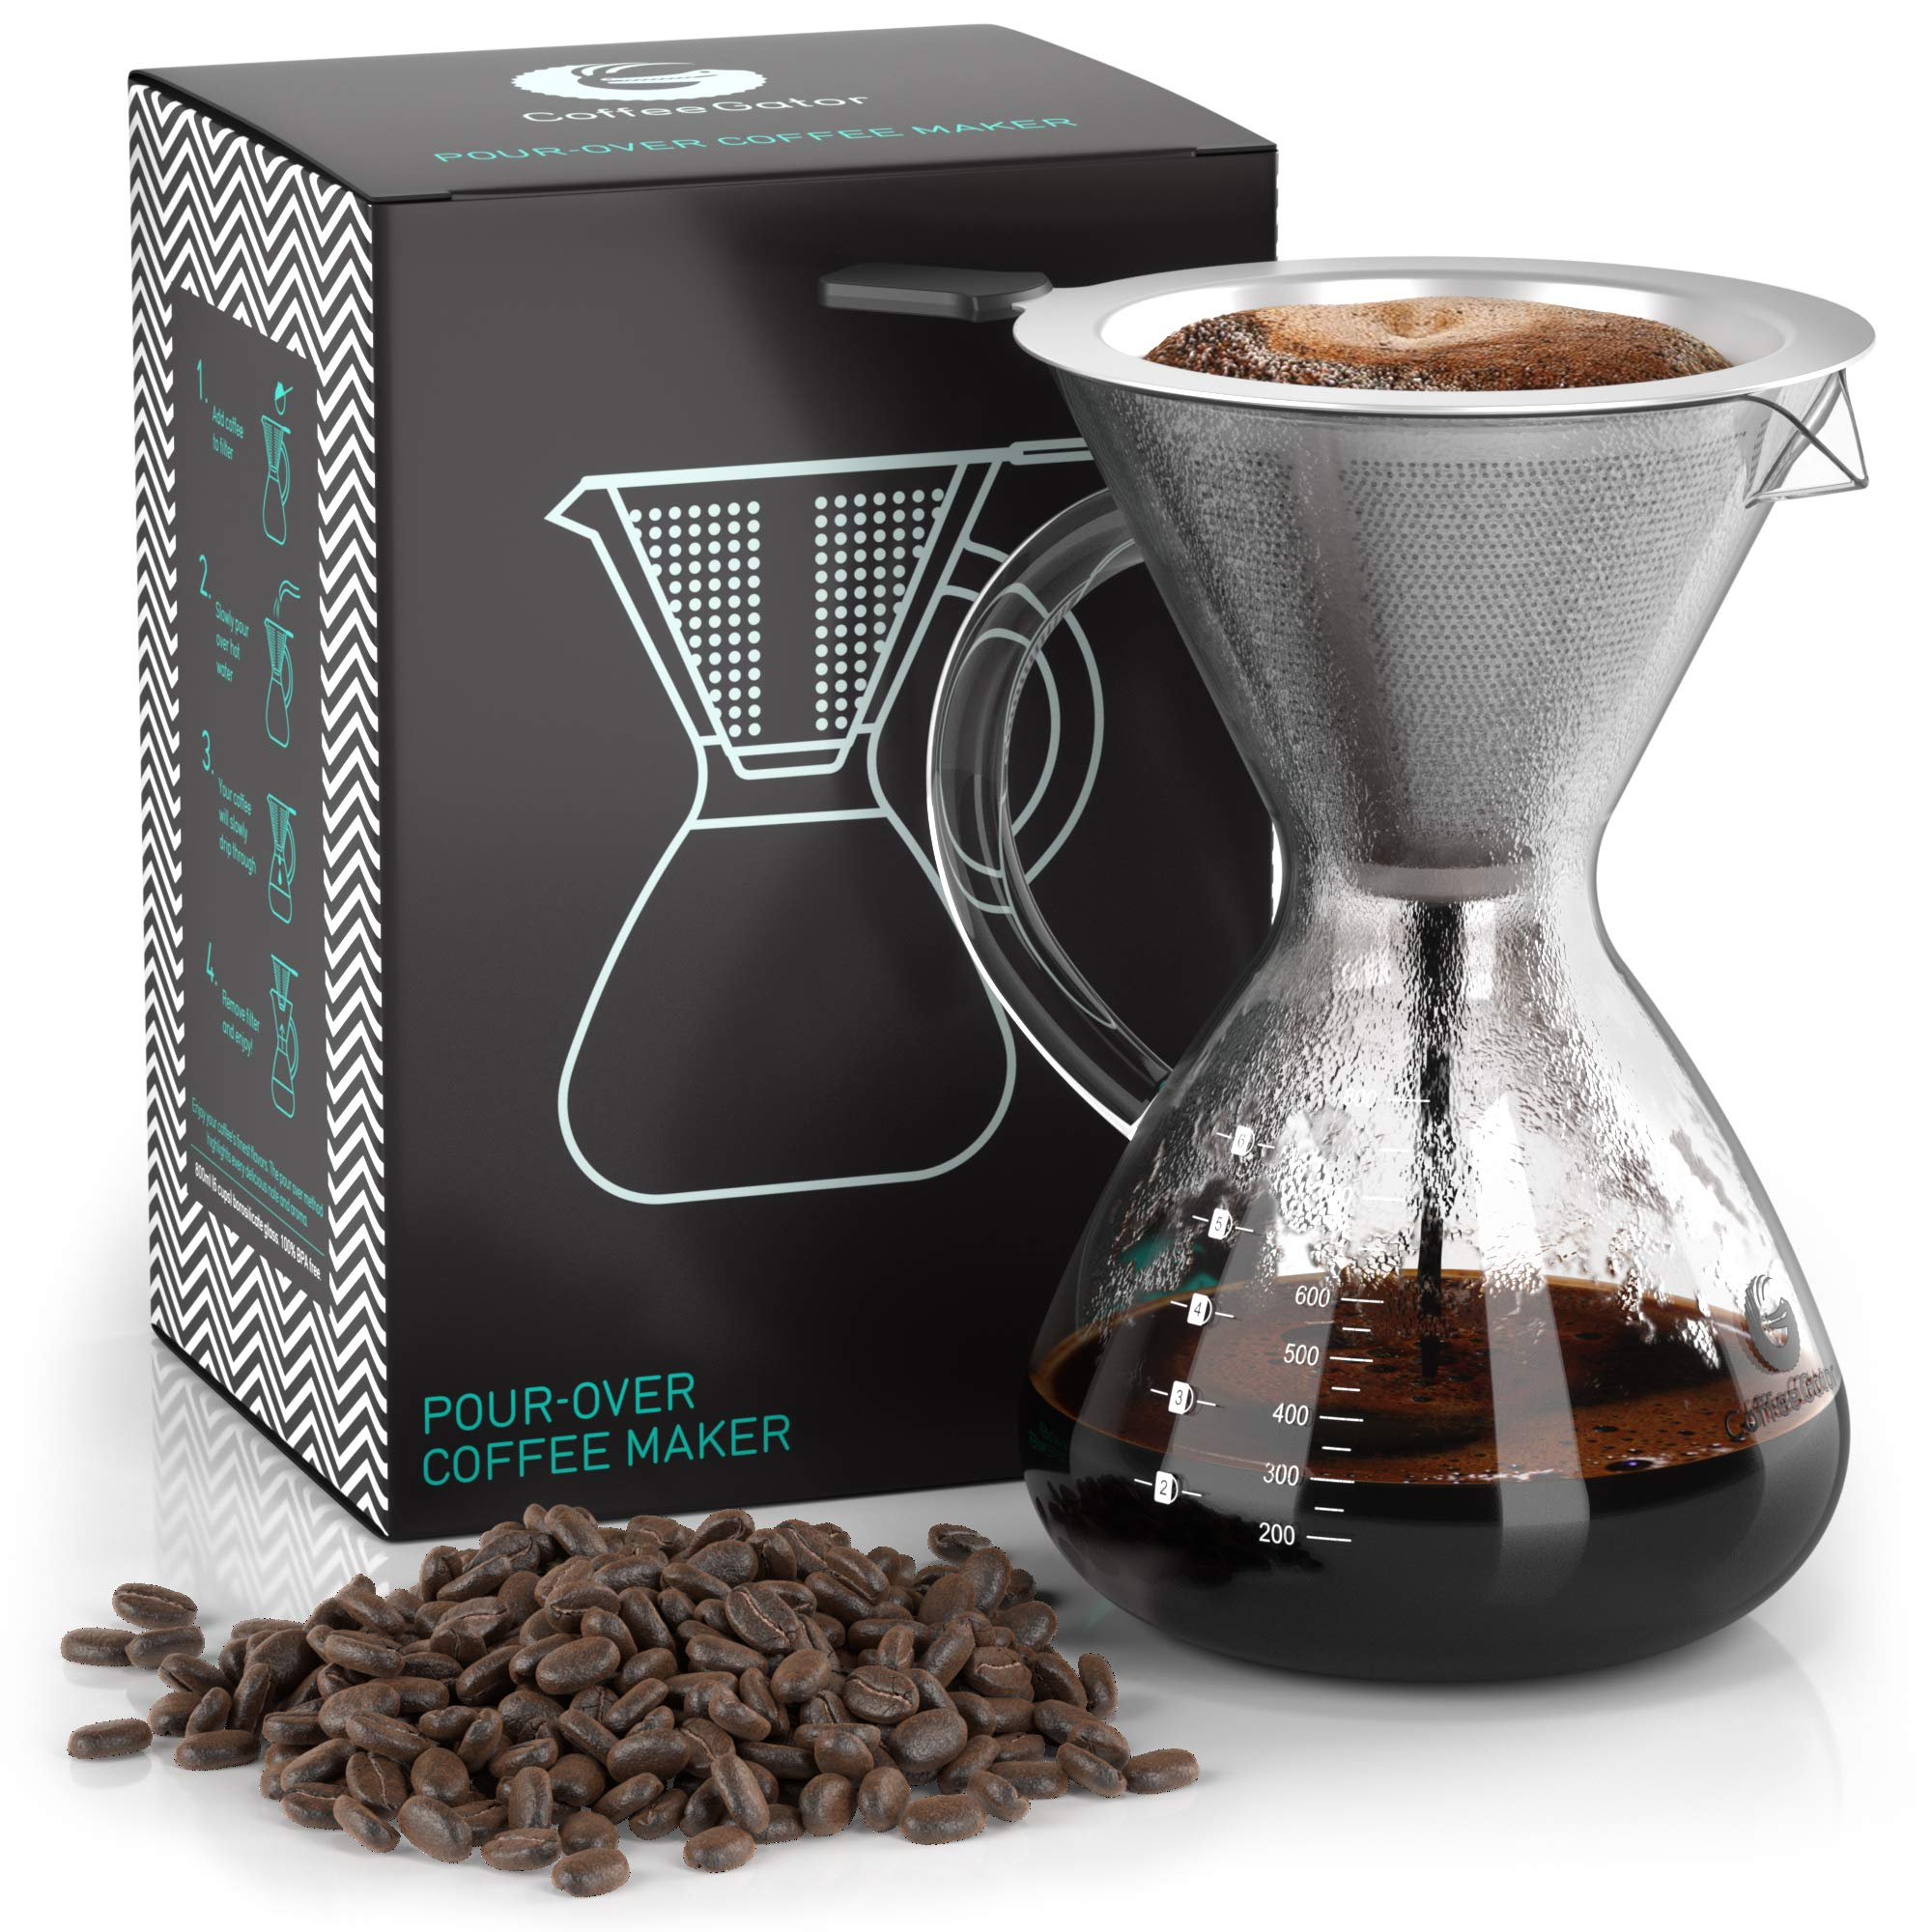 Coffee Gator Pour Over Brewer - Unlock More Flavor with a Paperless Stainless Steel Filter and BPA-Free Glass Carafe - Hand-Drip Coffee Maker - 27 Ounce by Coffee Gator